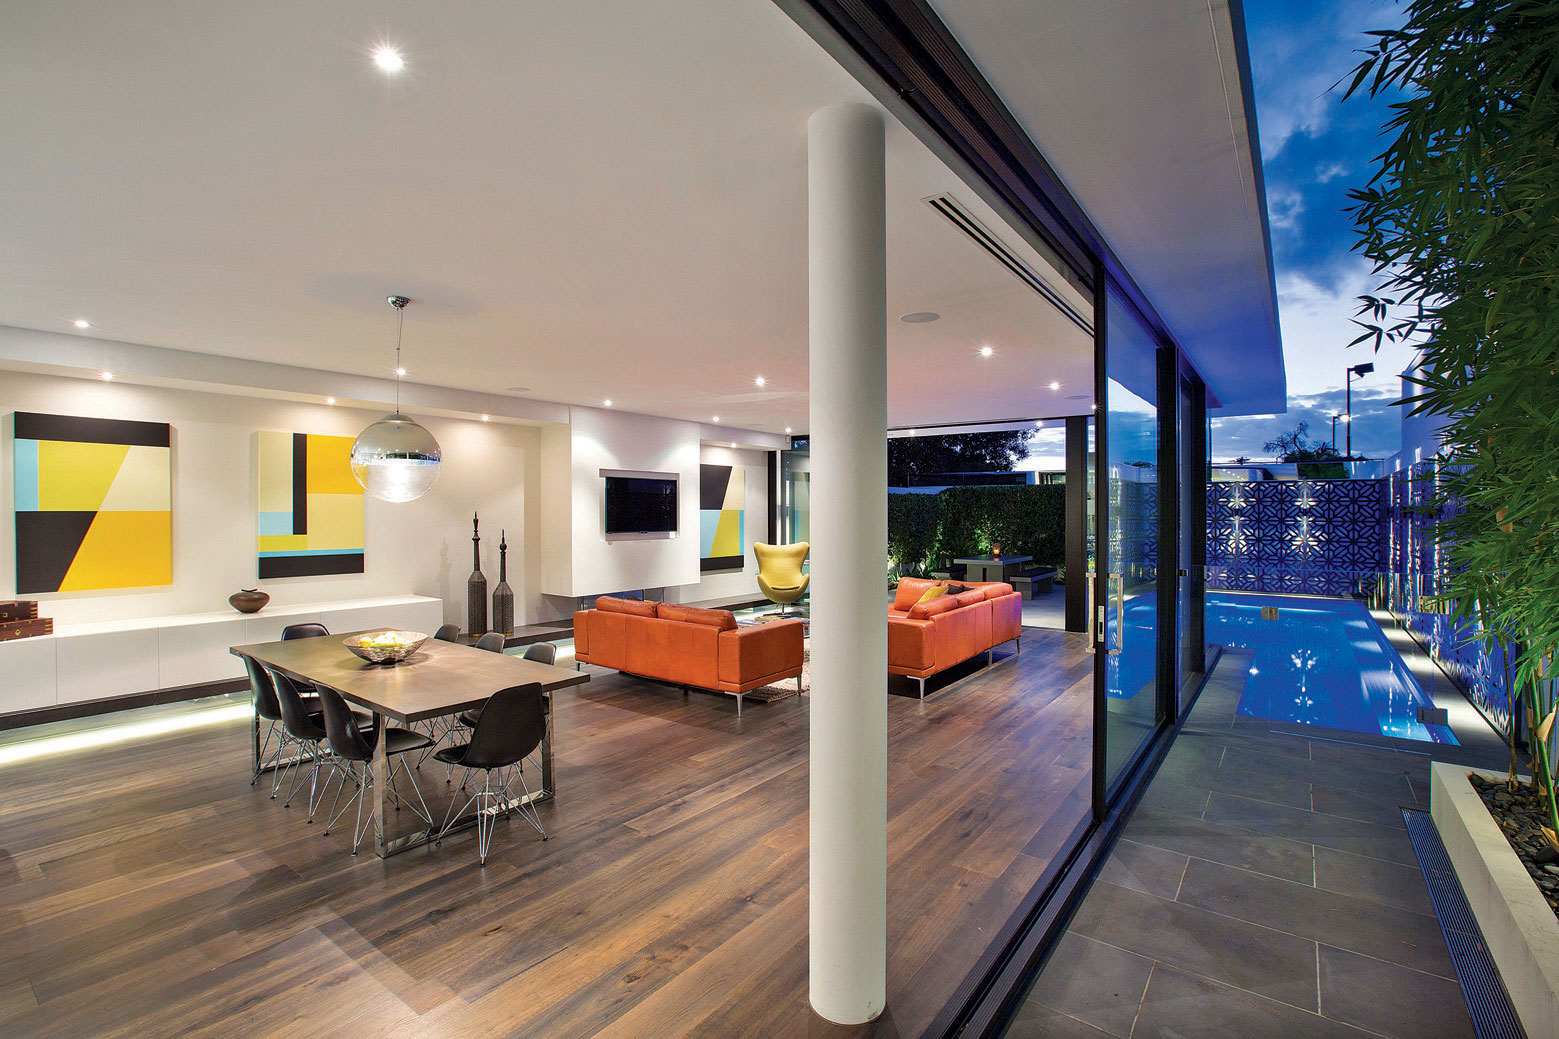 Dining Table, Sofas, Lighting, Pool, Glass Sliding Doors, Townhouses in Brighton, Australia